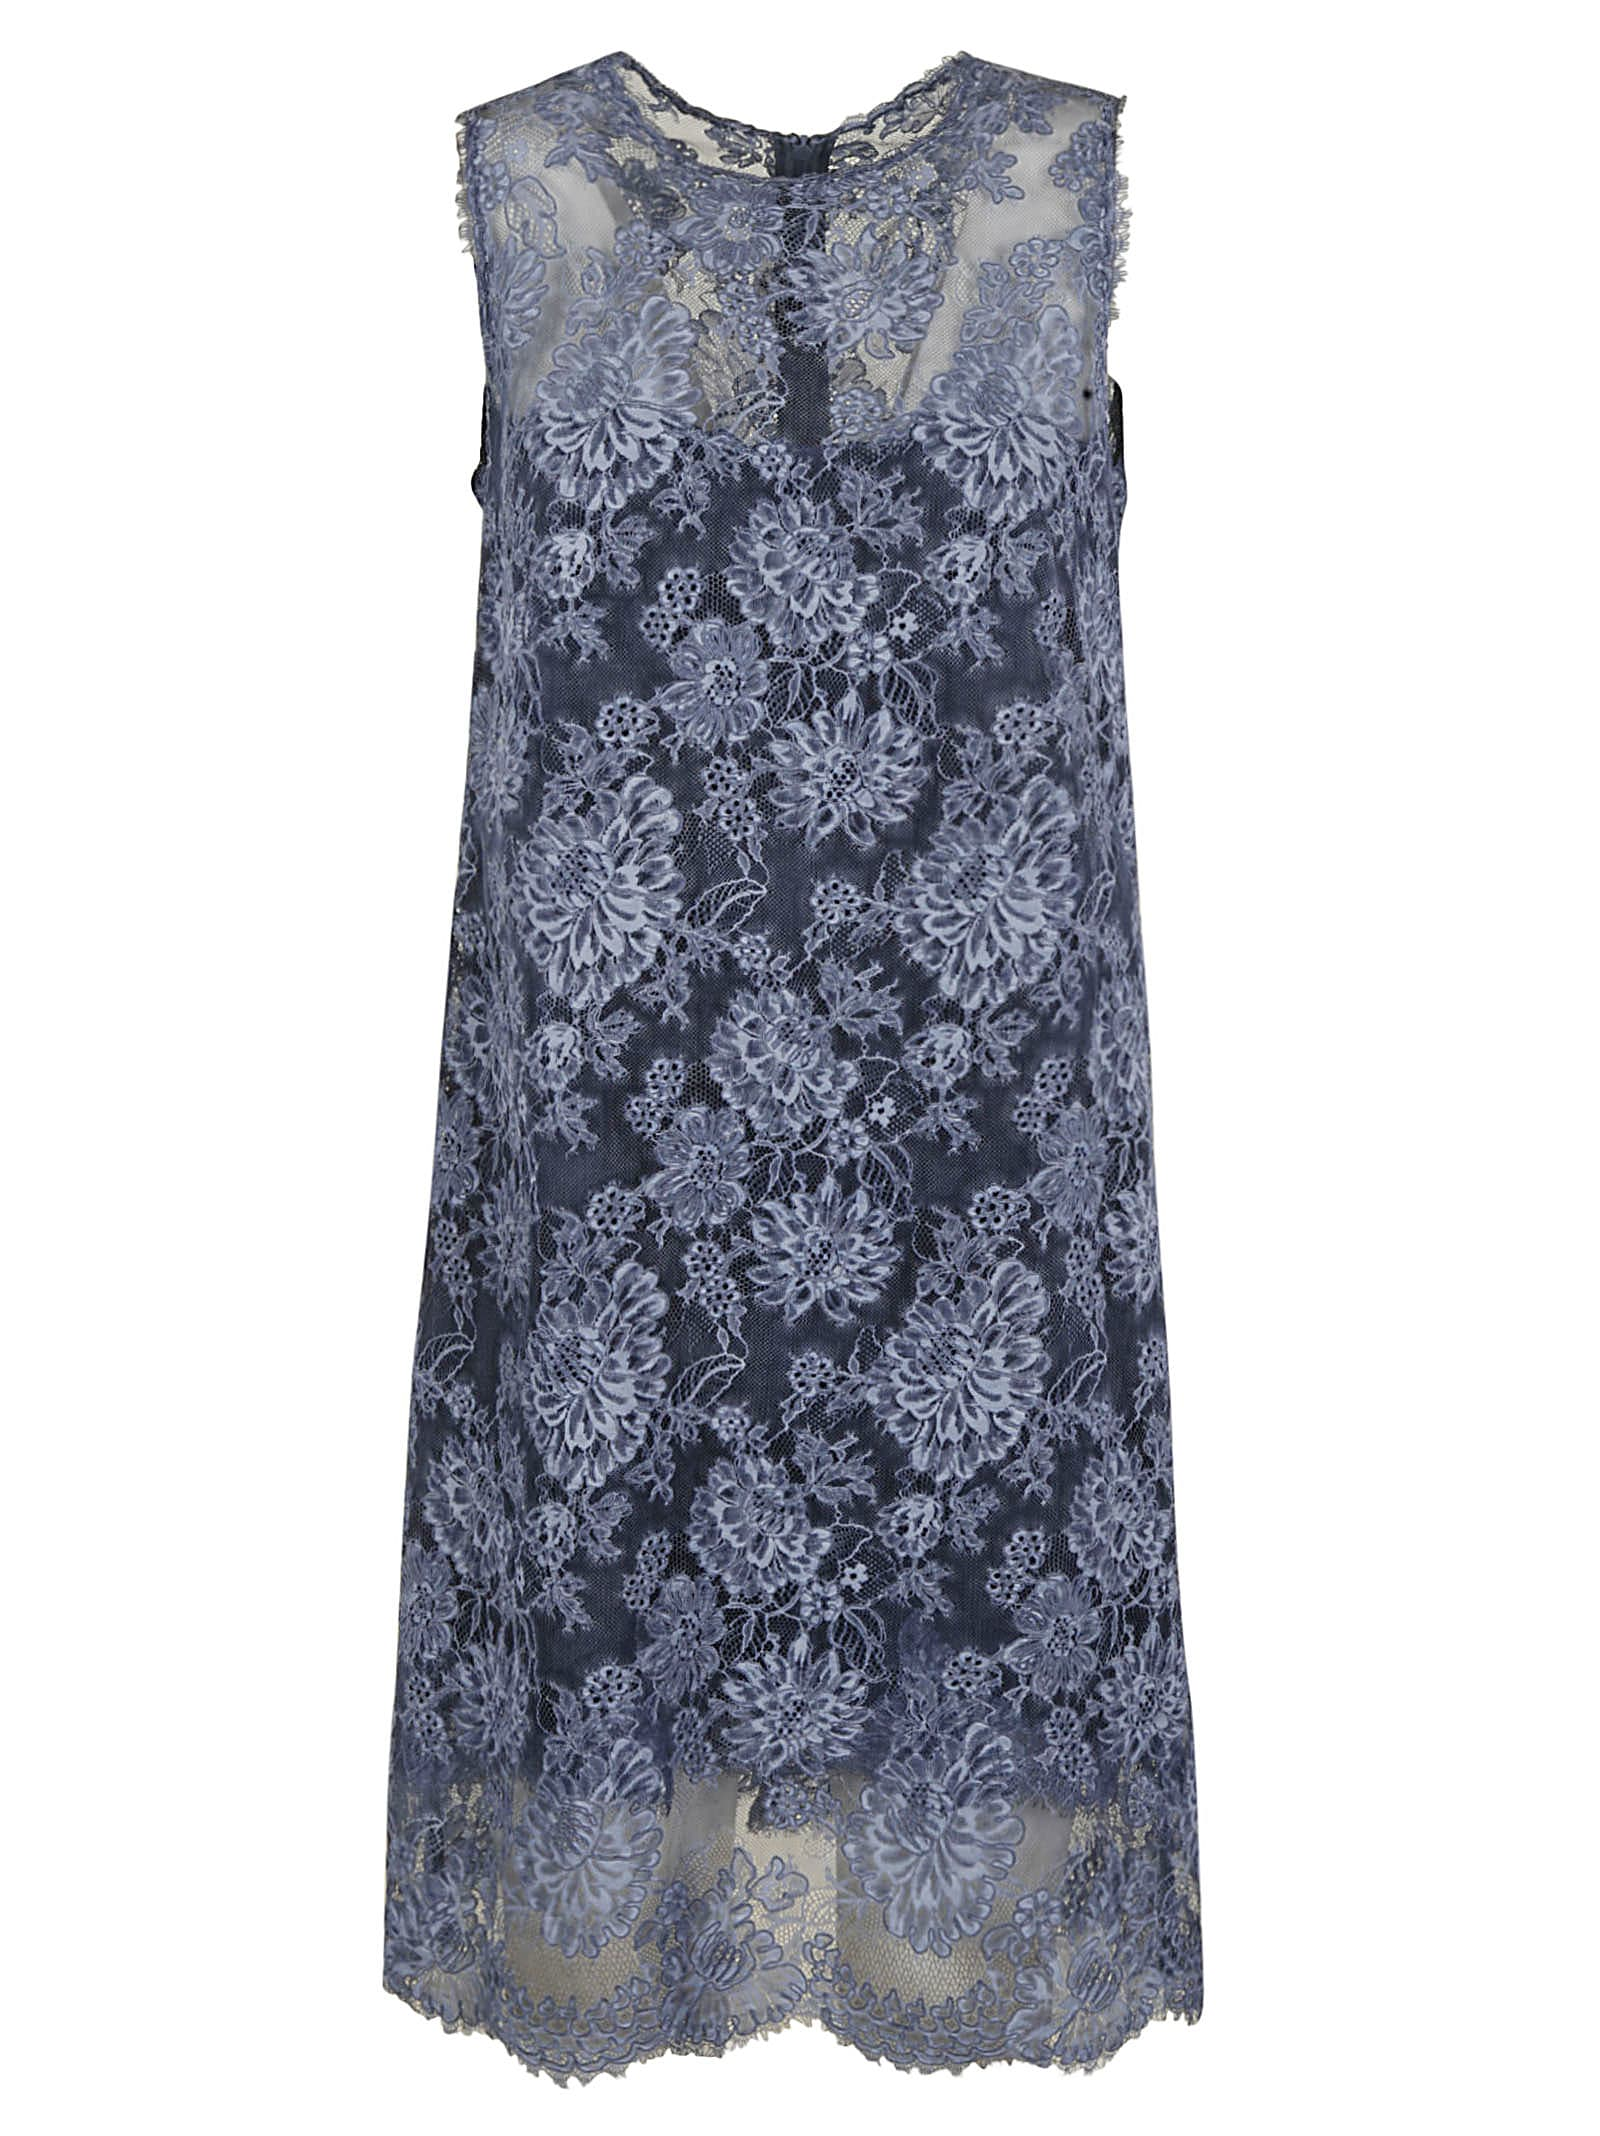 Buy Ermanno Scervino Floral Sleeveless Dress online, shop Ermanno Scervino with free shipping